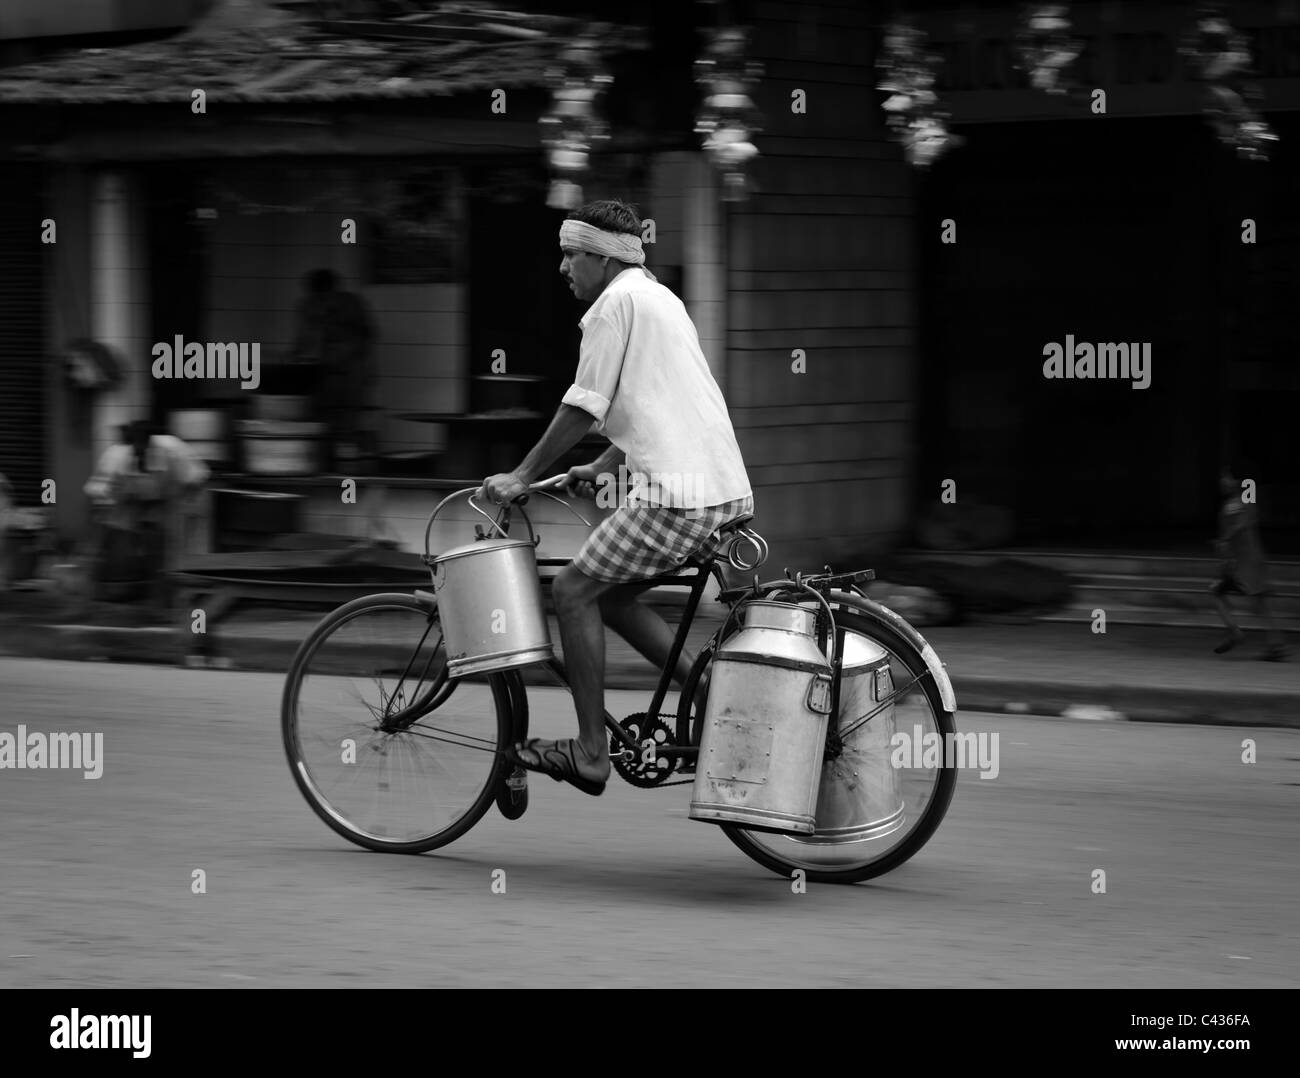 Panning portrait in black and white of a milk wallah on bicycle from Kolkata, West Bengal, India - Stock Image